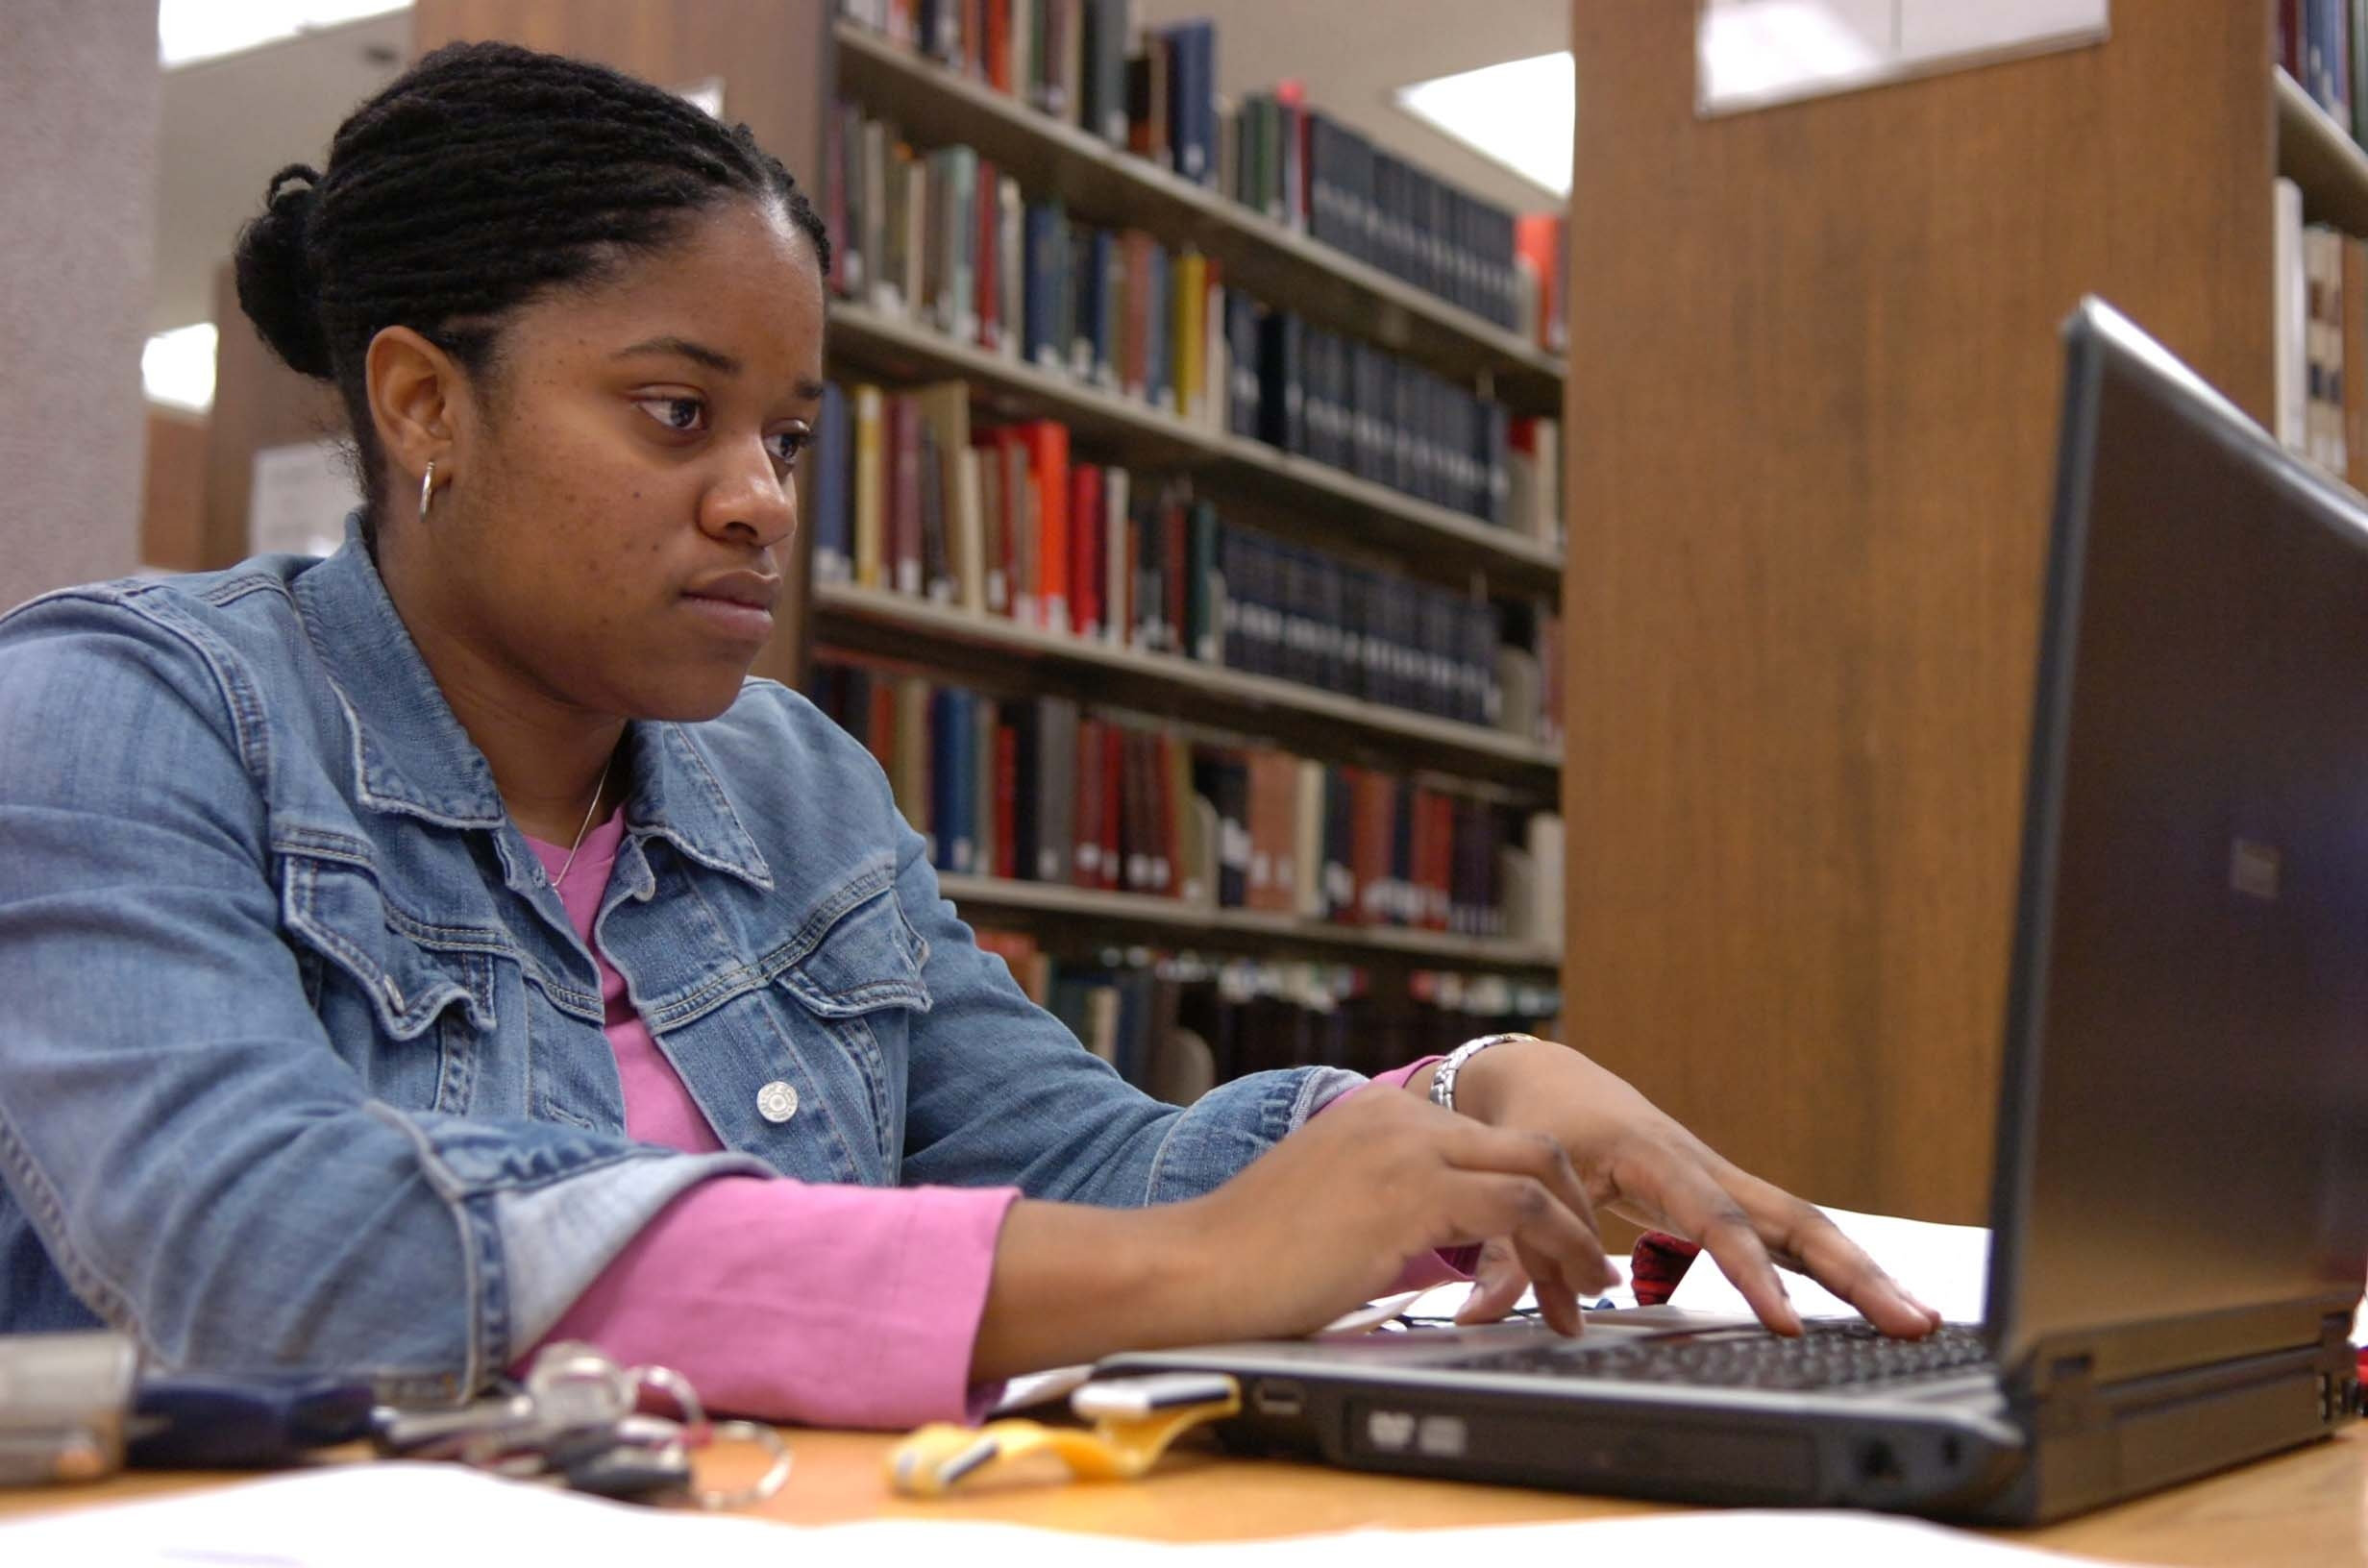 Student working at a laptop in the library